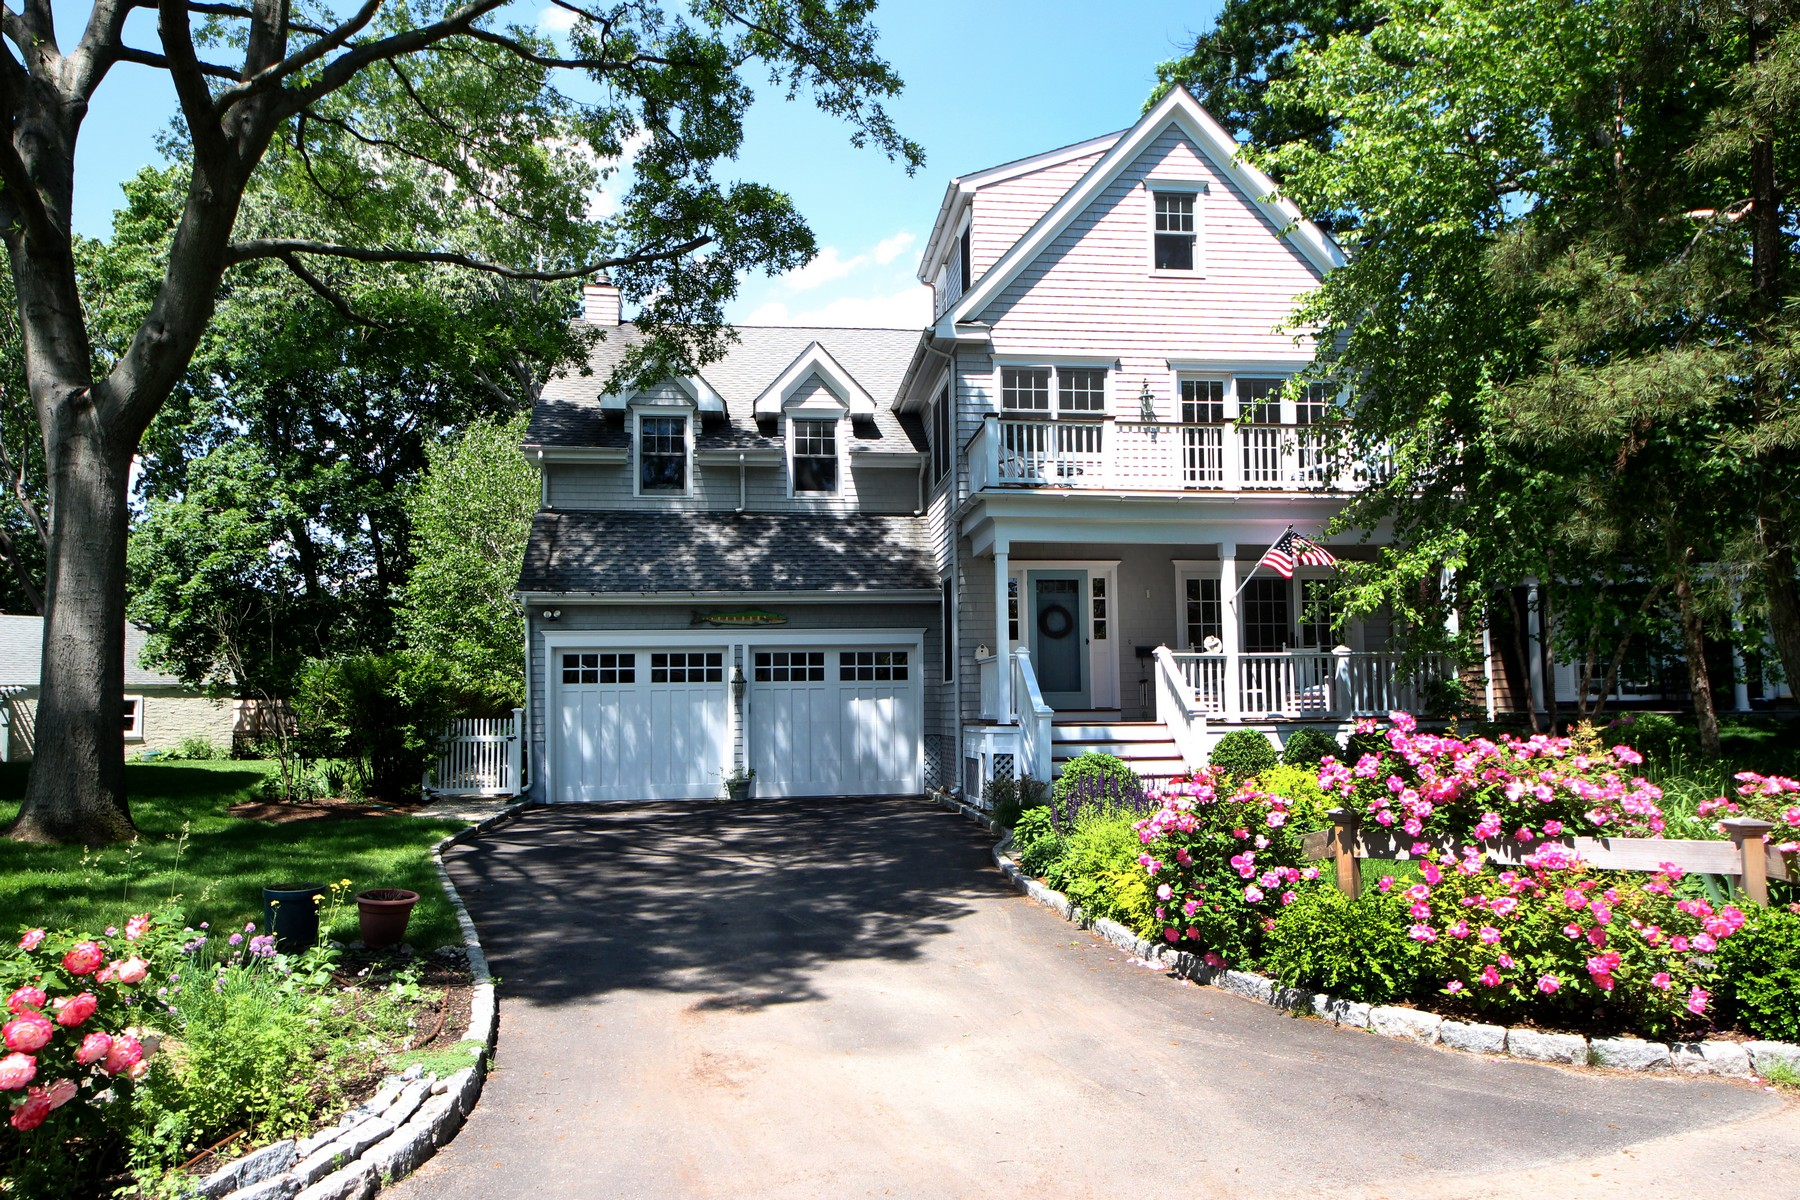 Casa Unifamiliar por un Venta en Rowayton Beach Association 3 Crooked Lane Rowayton, Norwalk, Connecticut, 06853 Estados Unidos